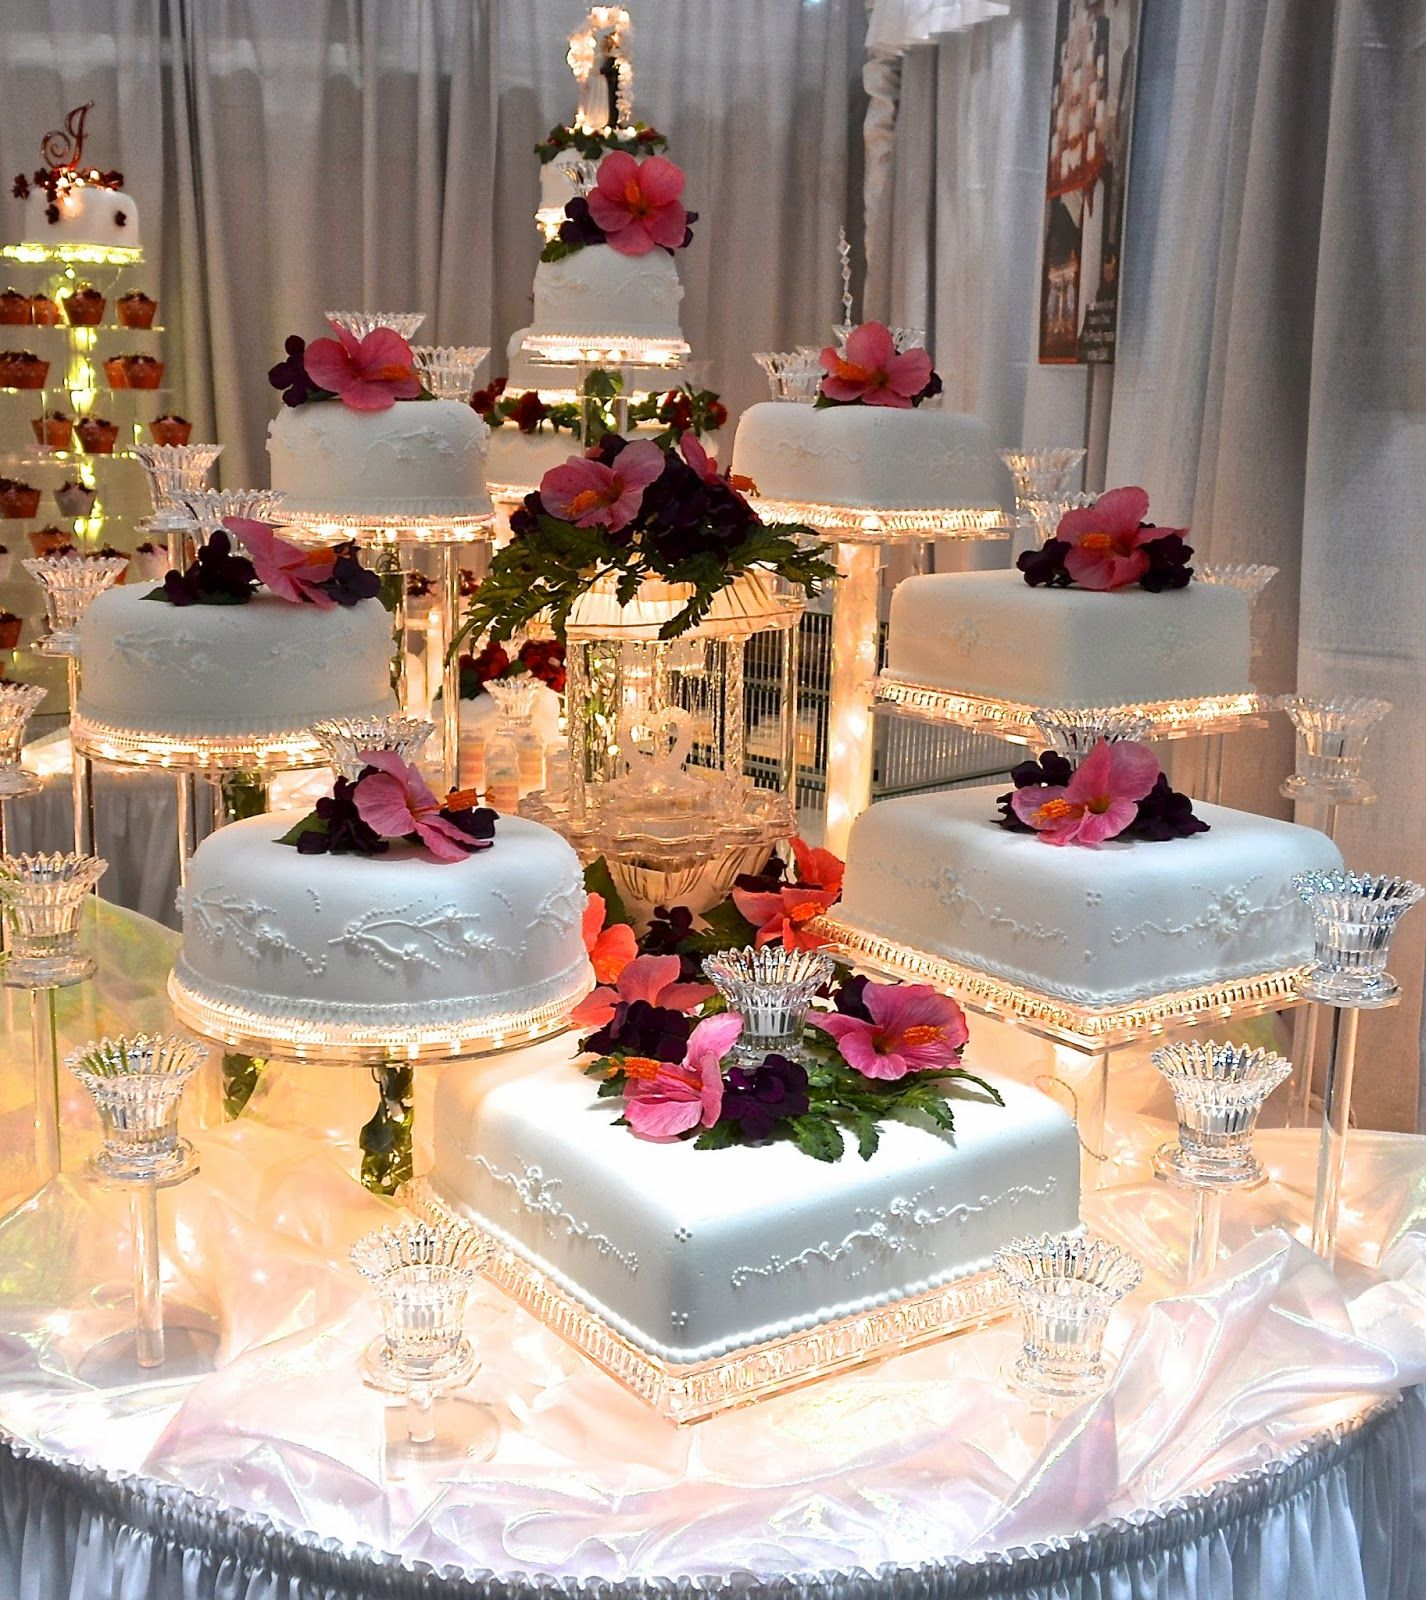 Everything You Need To Know About Wedding Cake: Wedding Cakes, Wedding Cake